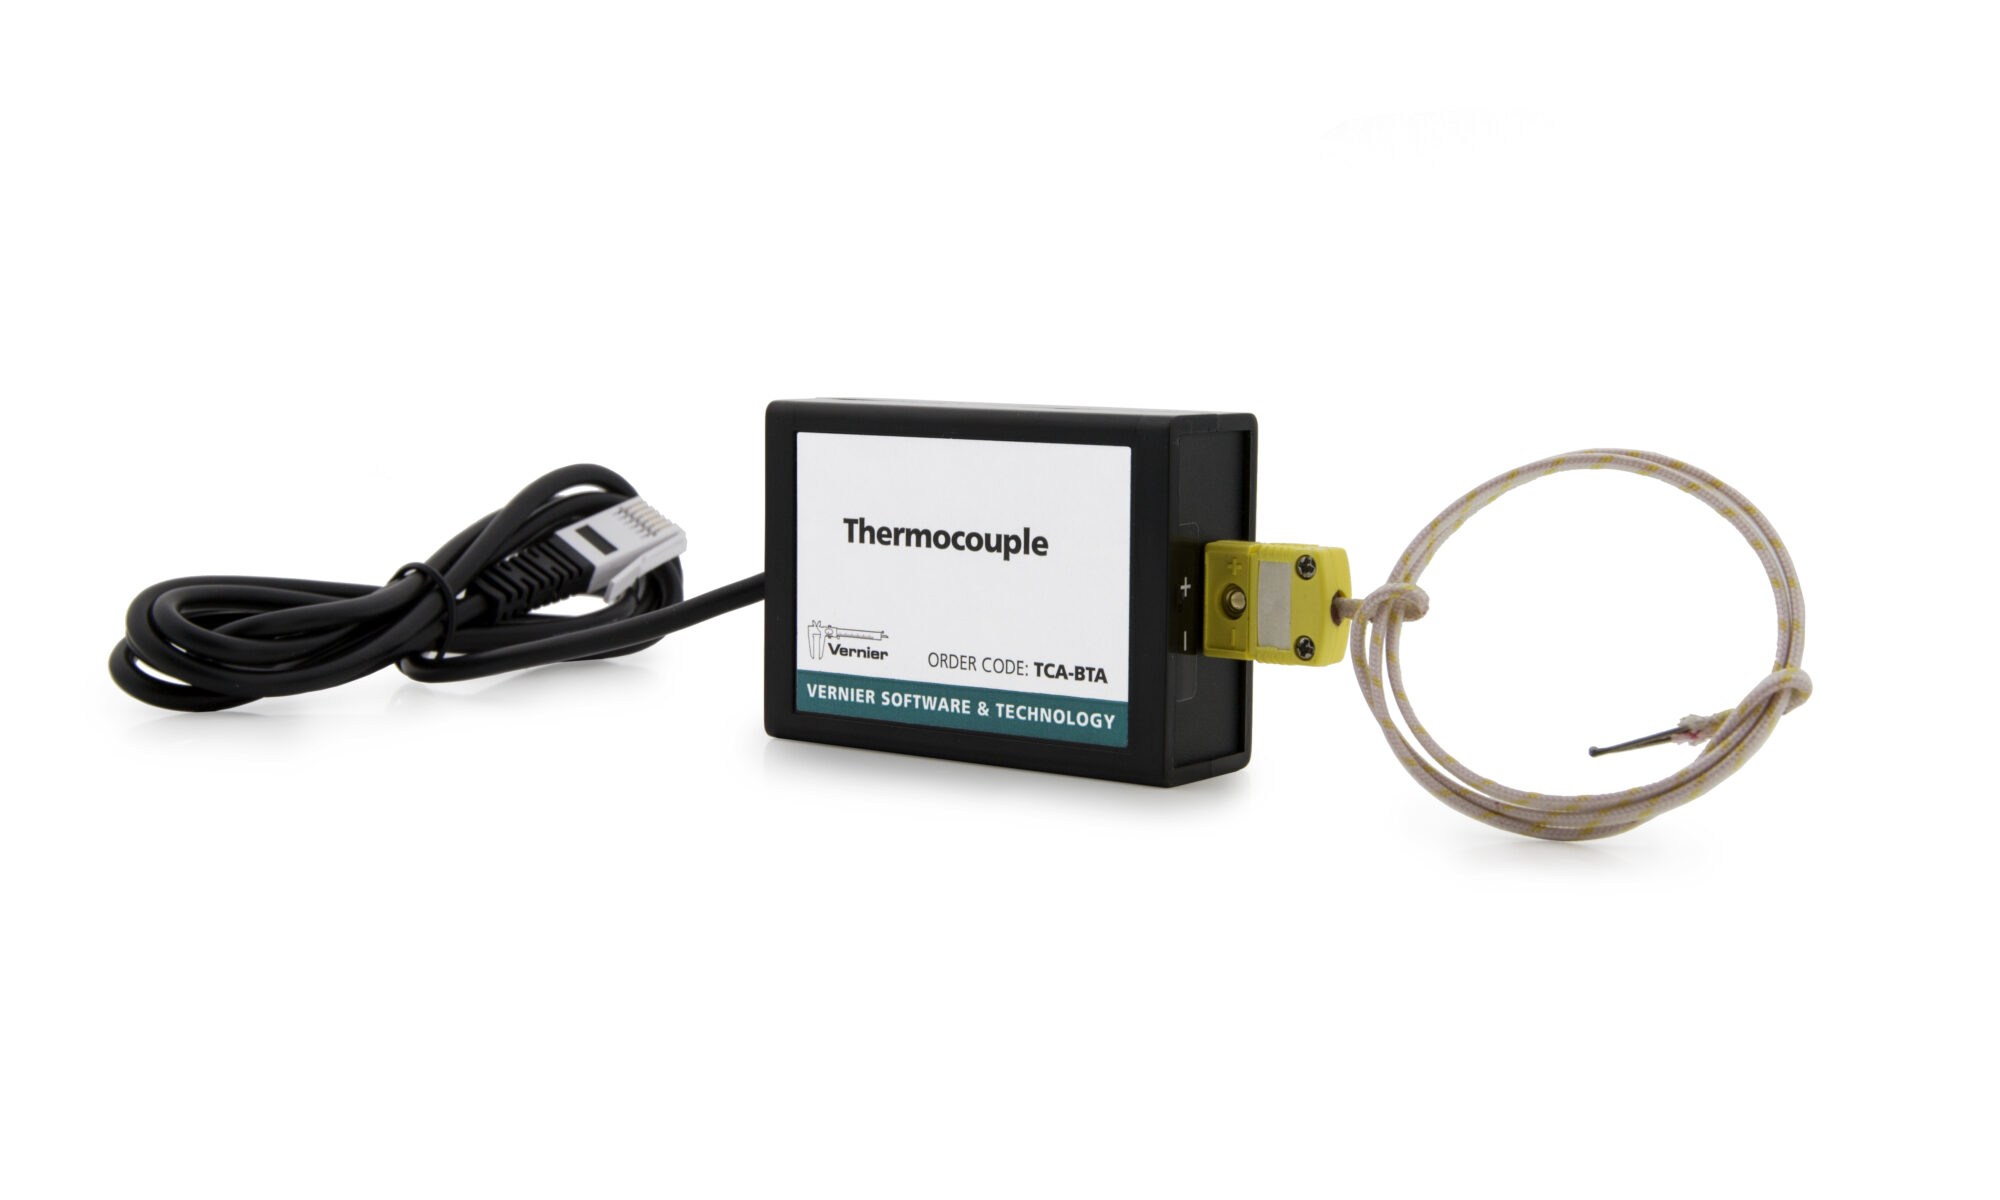 Thermocouple product image